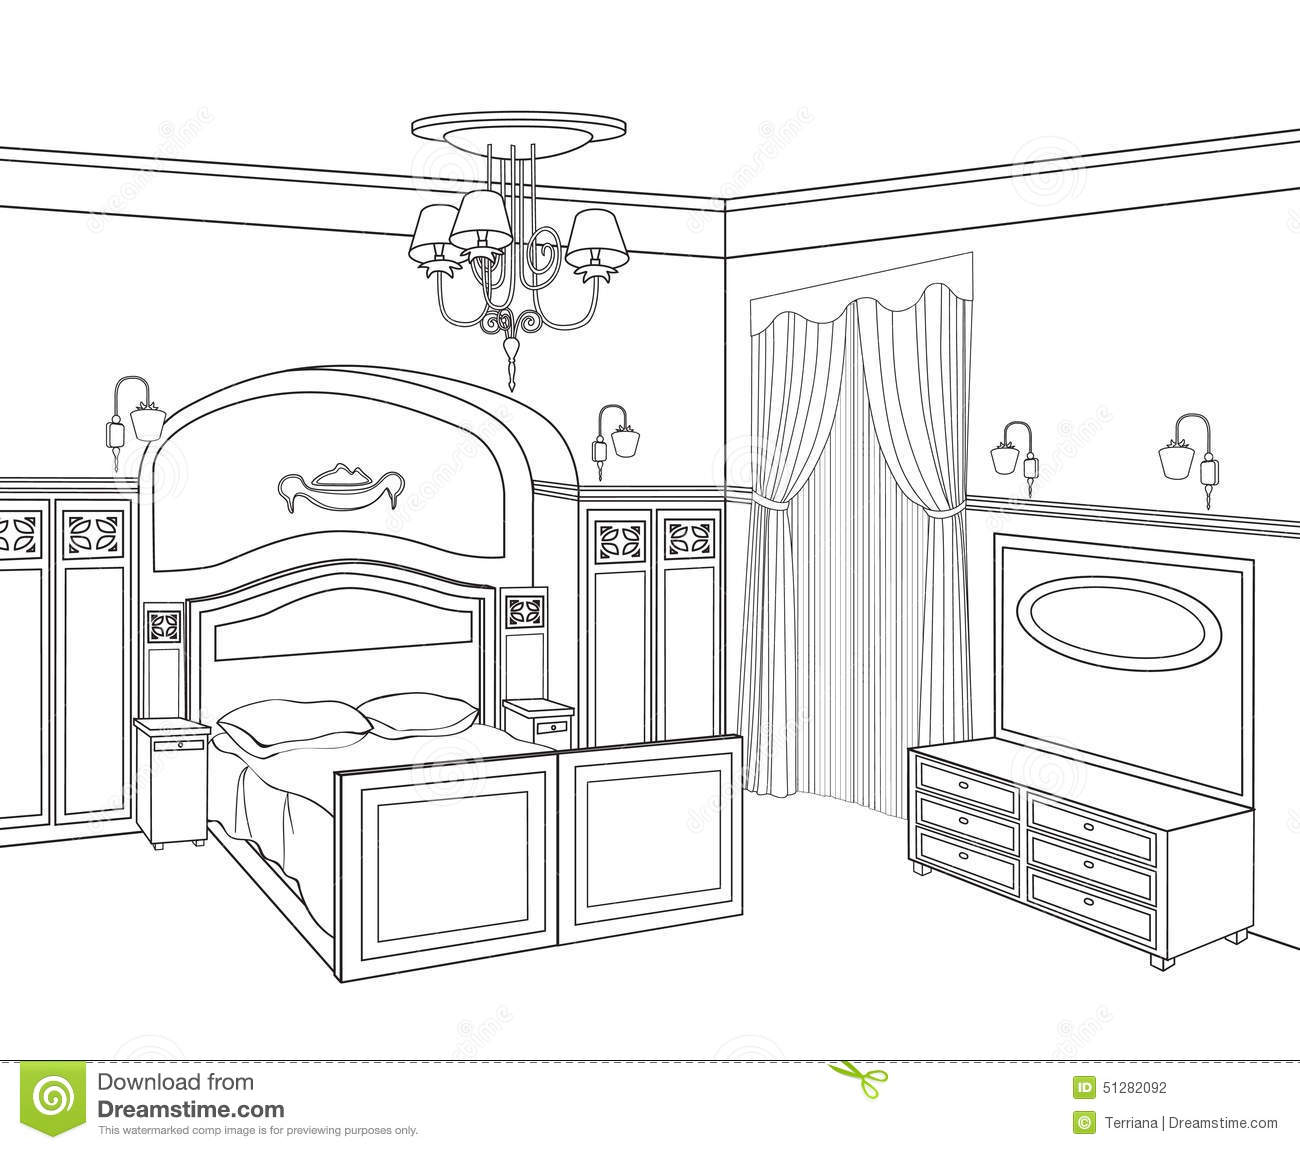 Bedroom furniture retro style bed room stock for Bedroom designs sketch